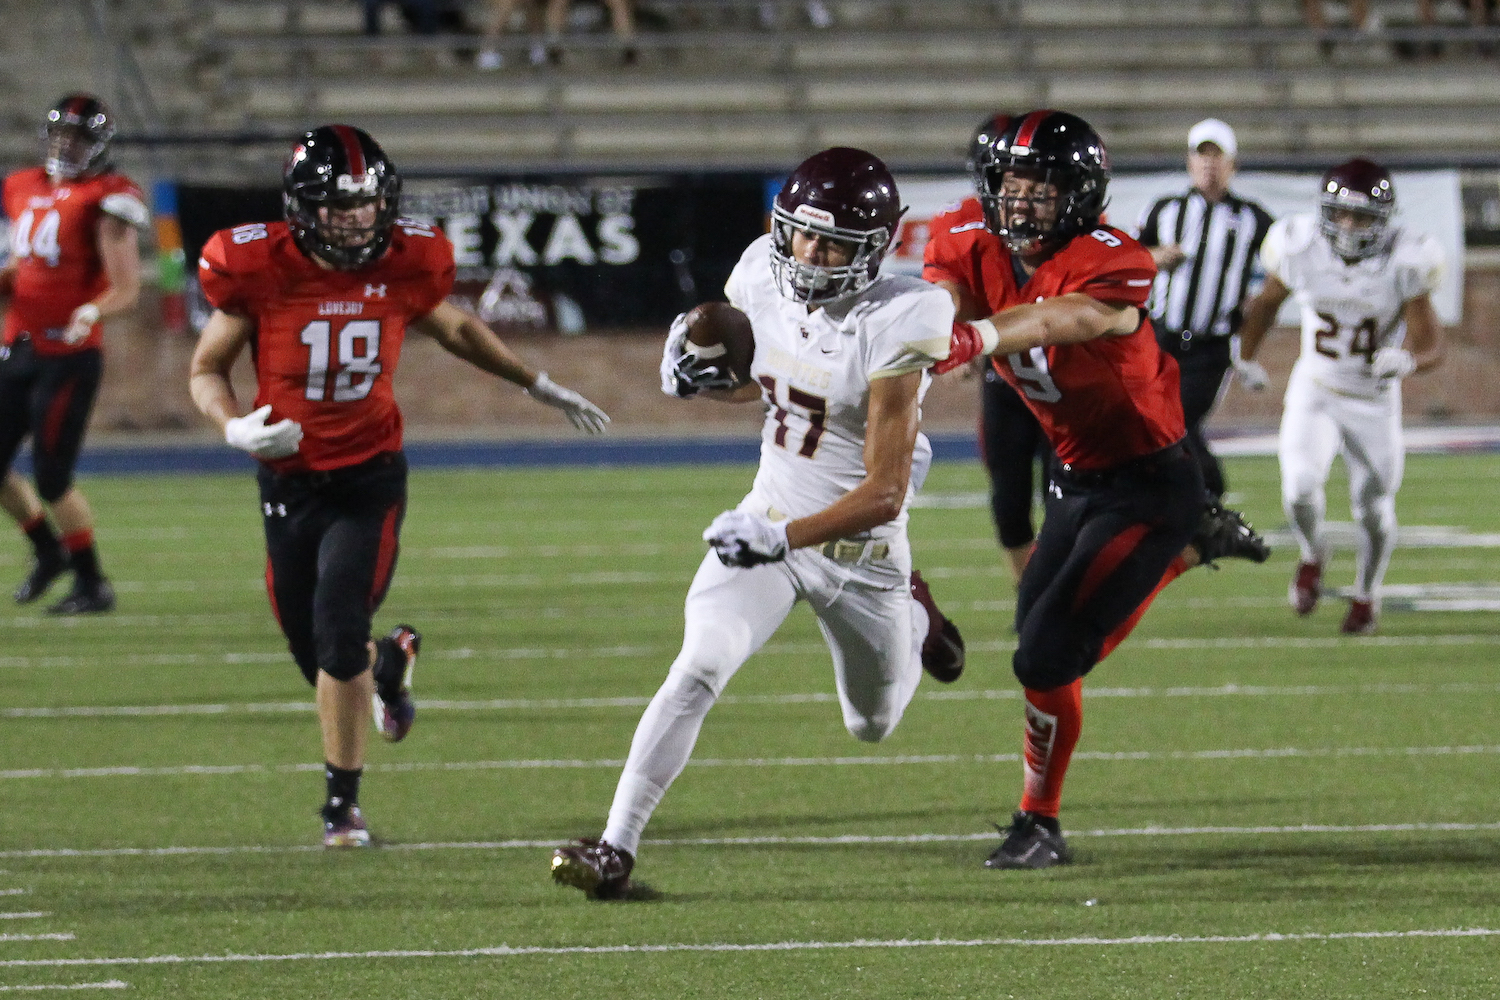 Seniors Ryan Collins and Danny Flaggert pursue a Frisco Heritage ball carrier.